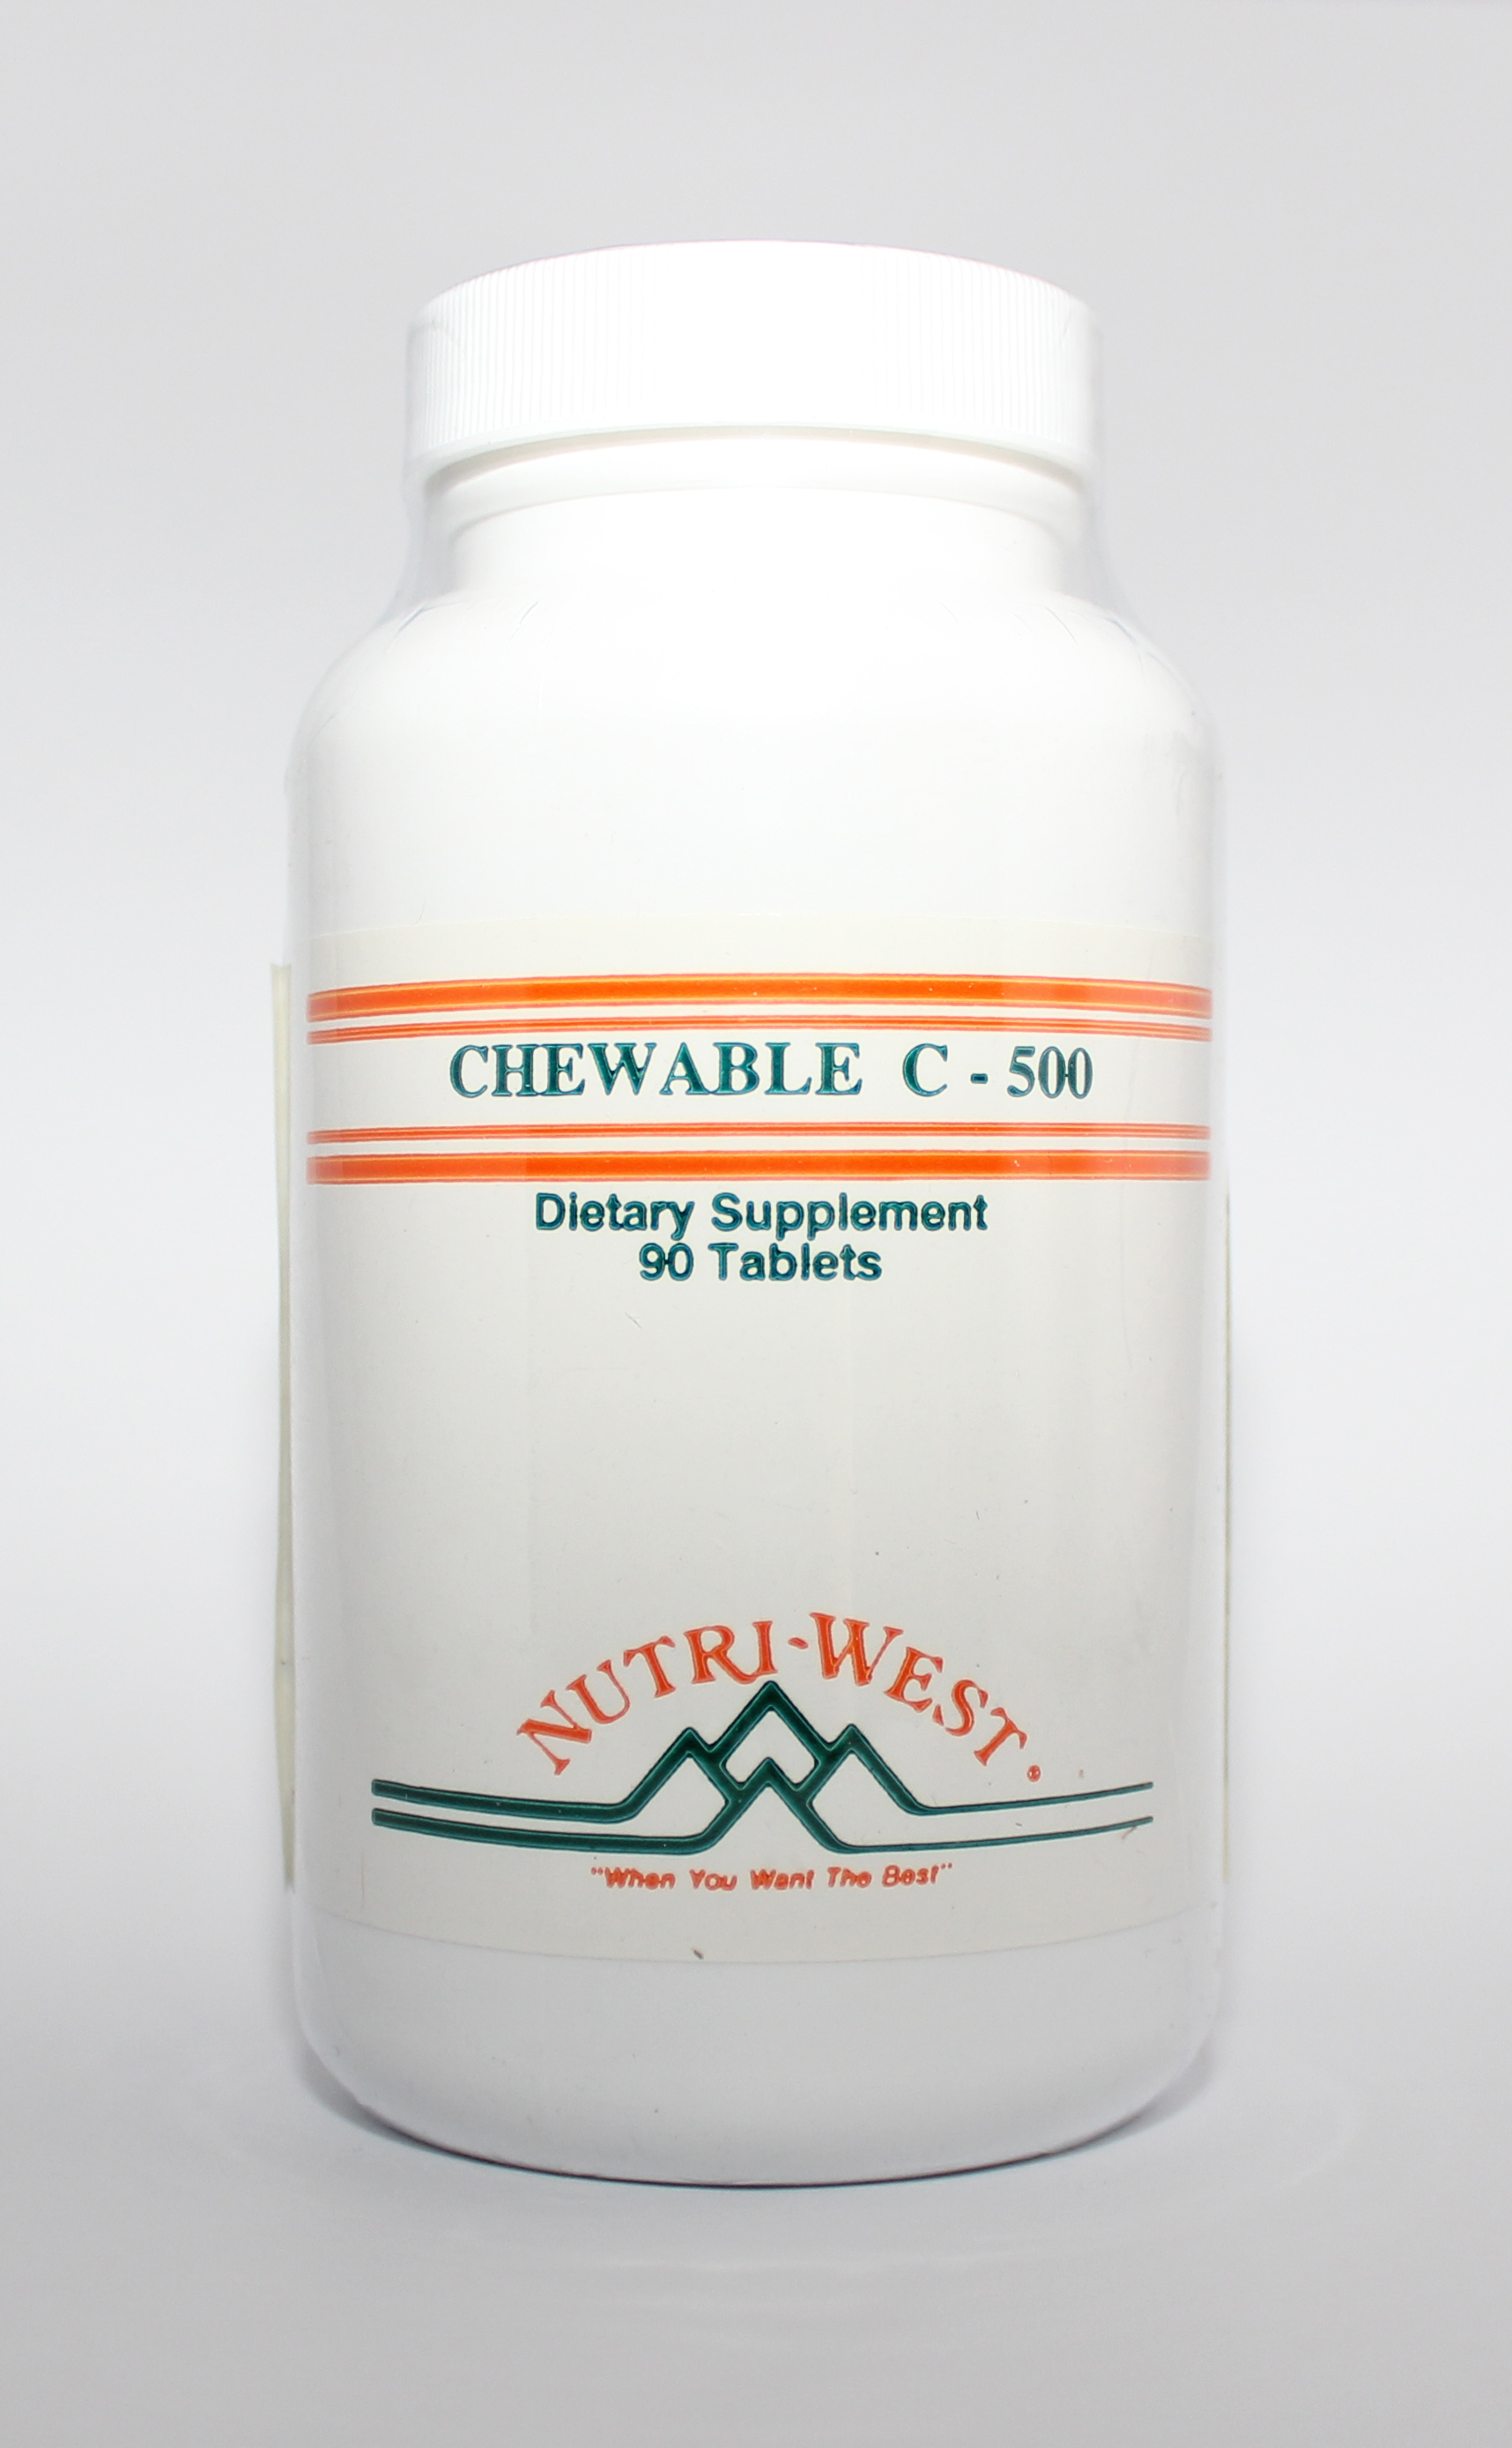 Nutri-West Chewable C-500 - 90